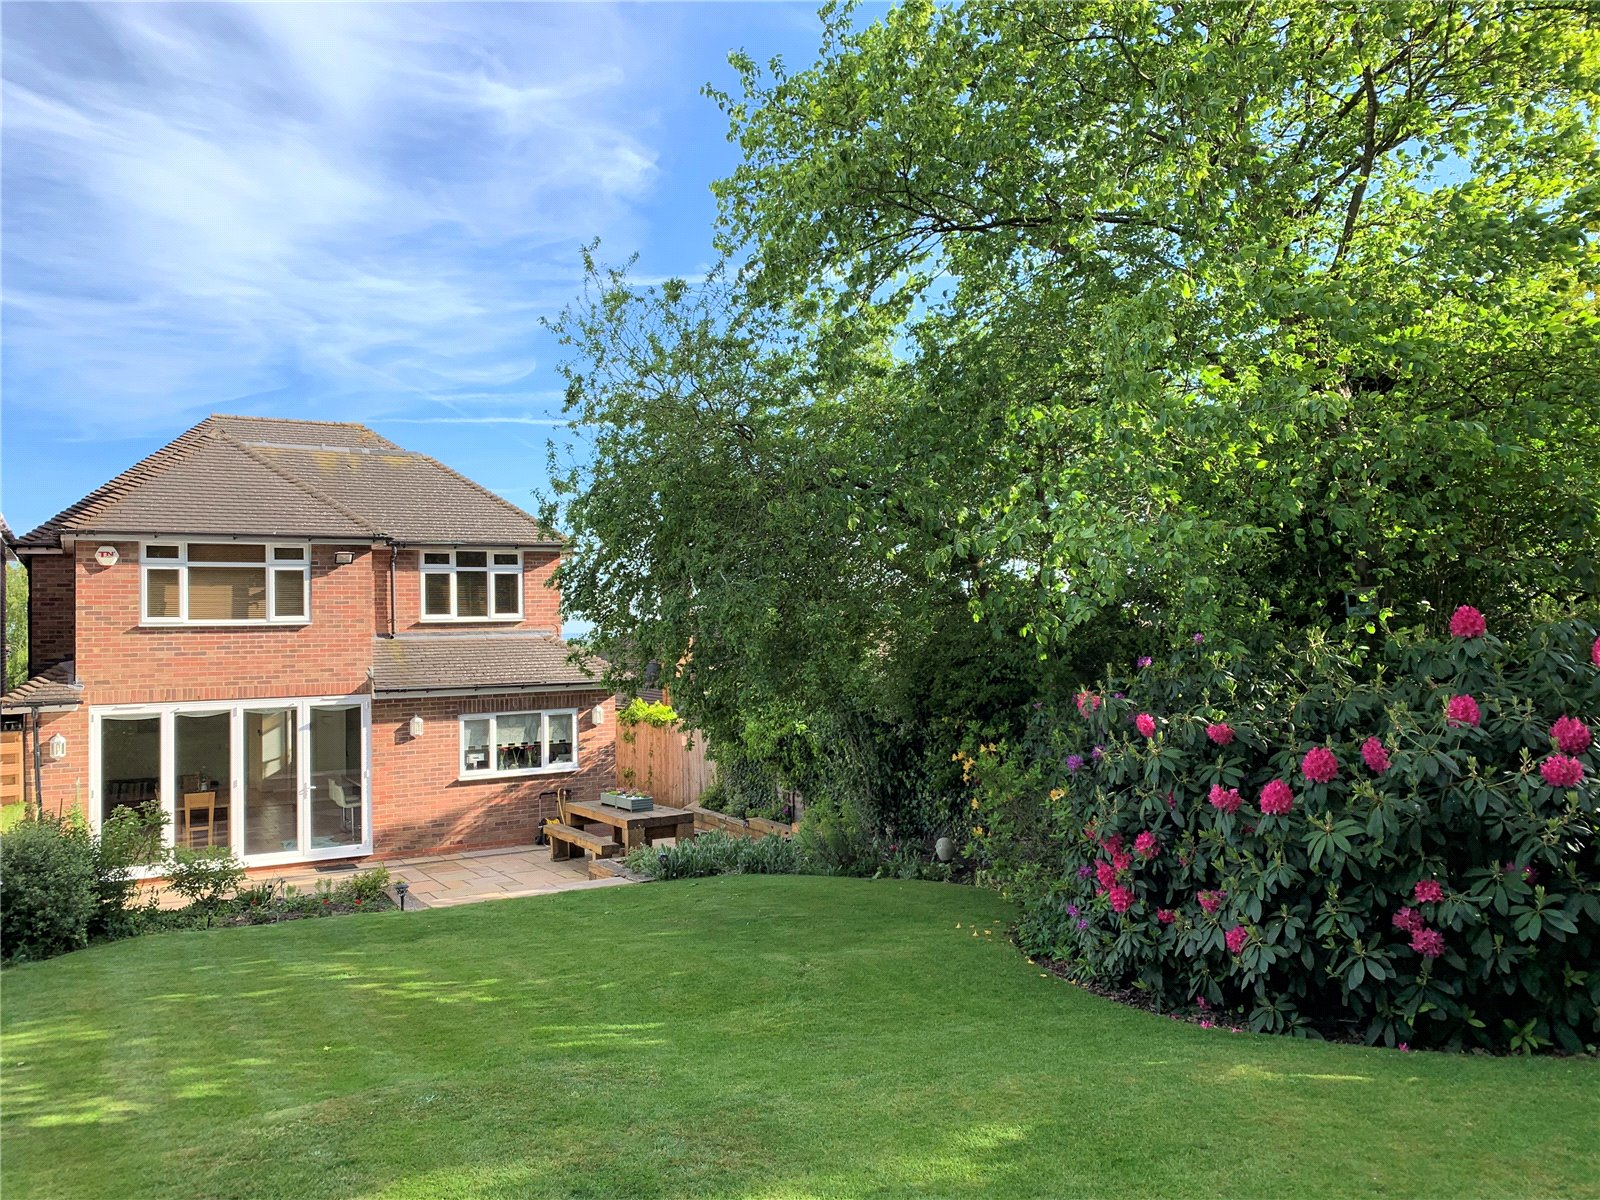 4 bed house for sale in Stanmore, HA7 3AZ 12